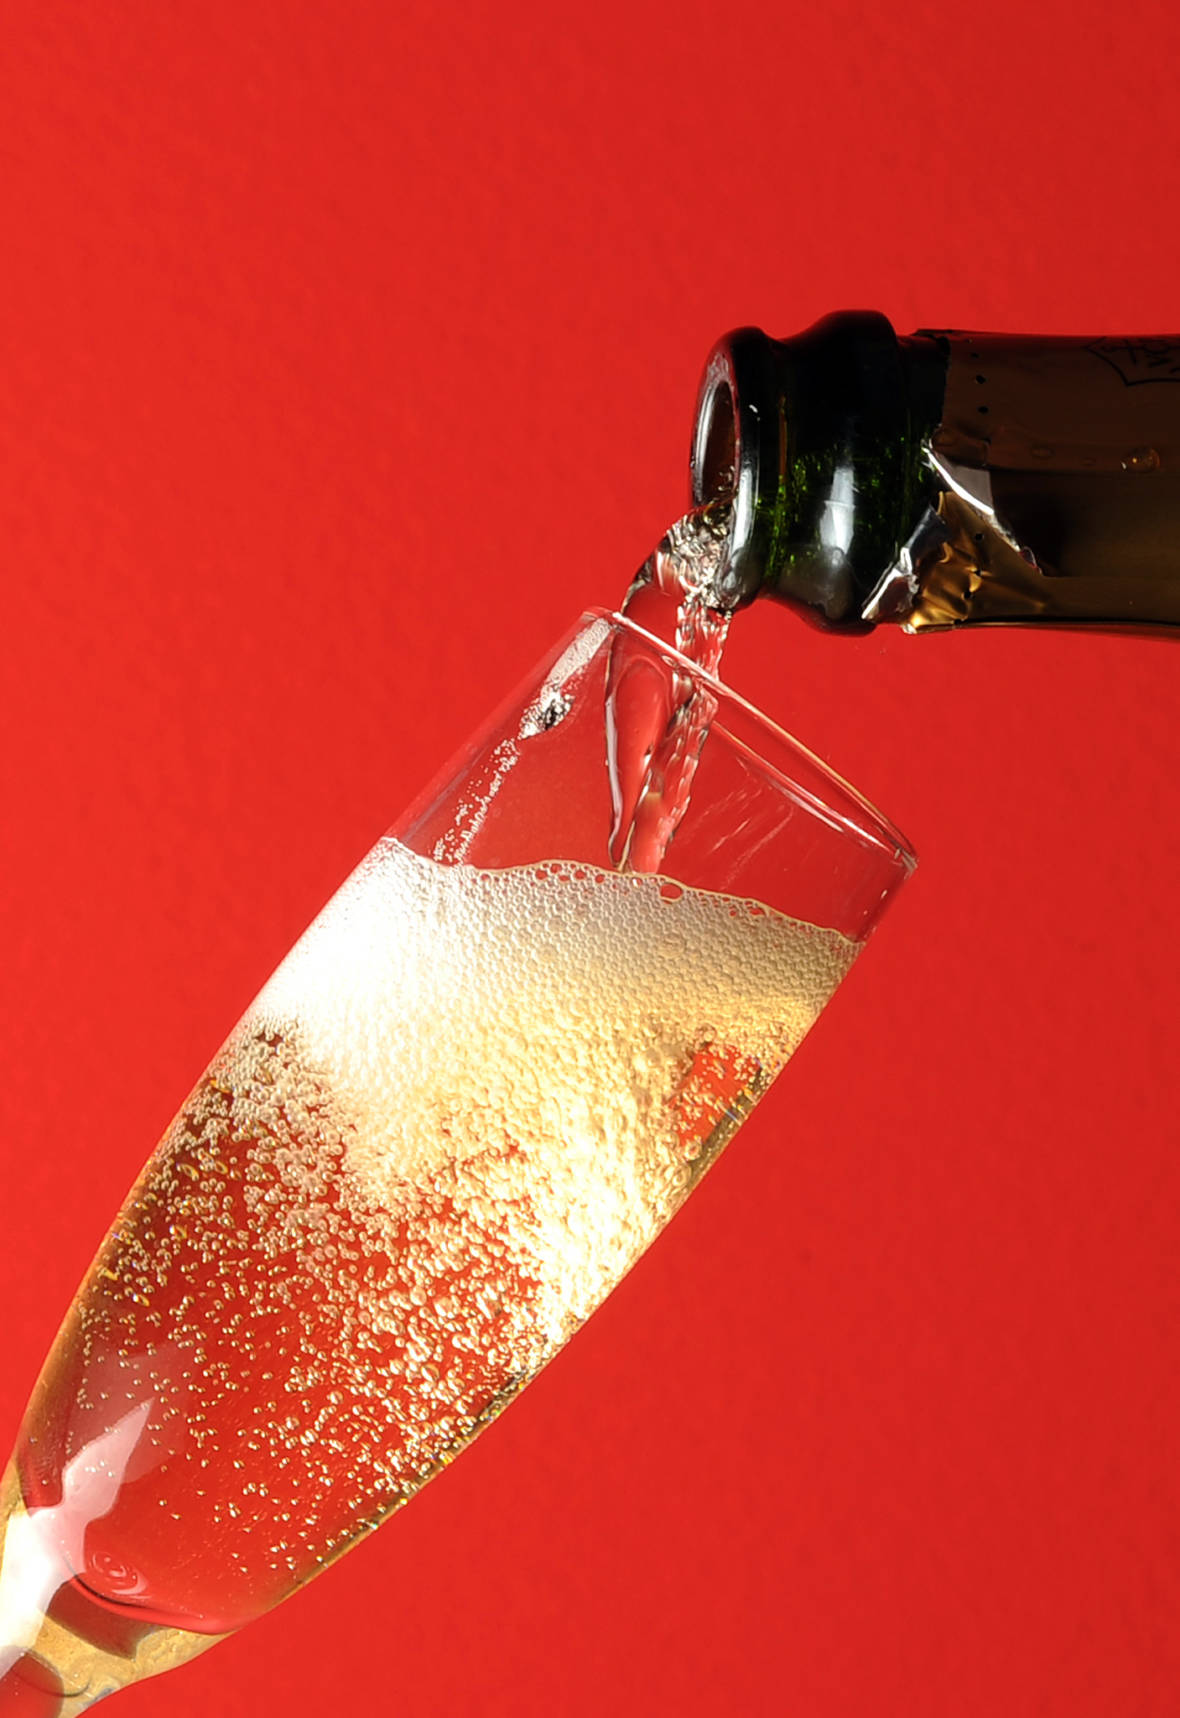 Size (And Sound) Matters When It Comes To Bubbles In Your Sparkling Wine